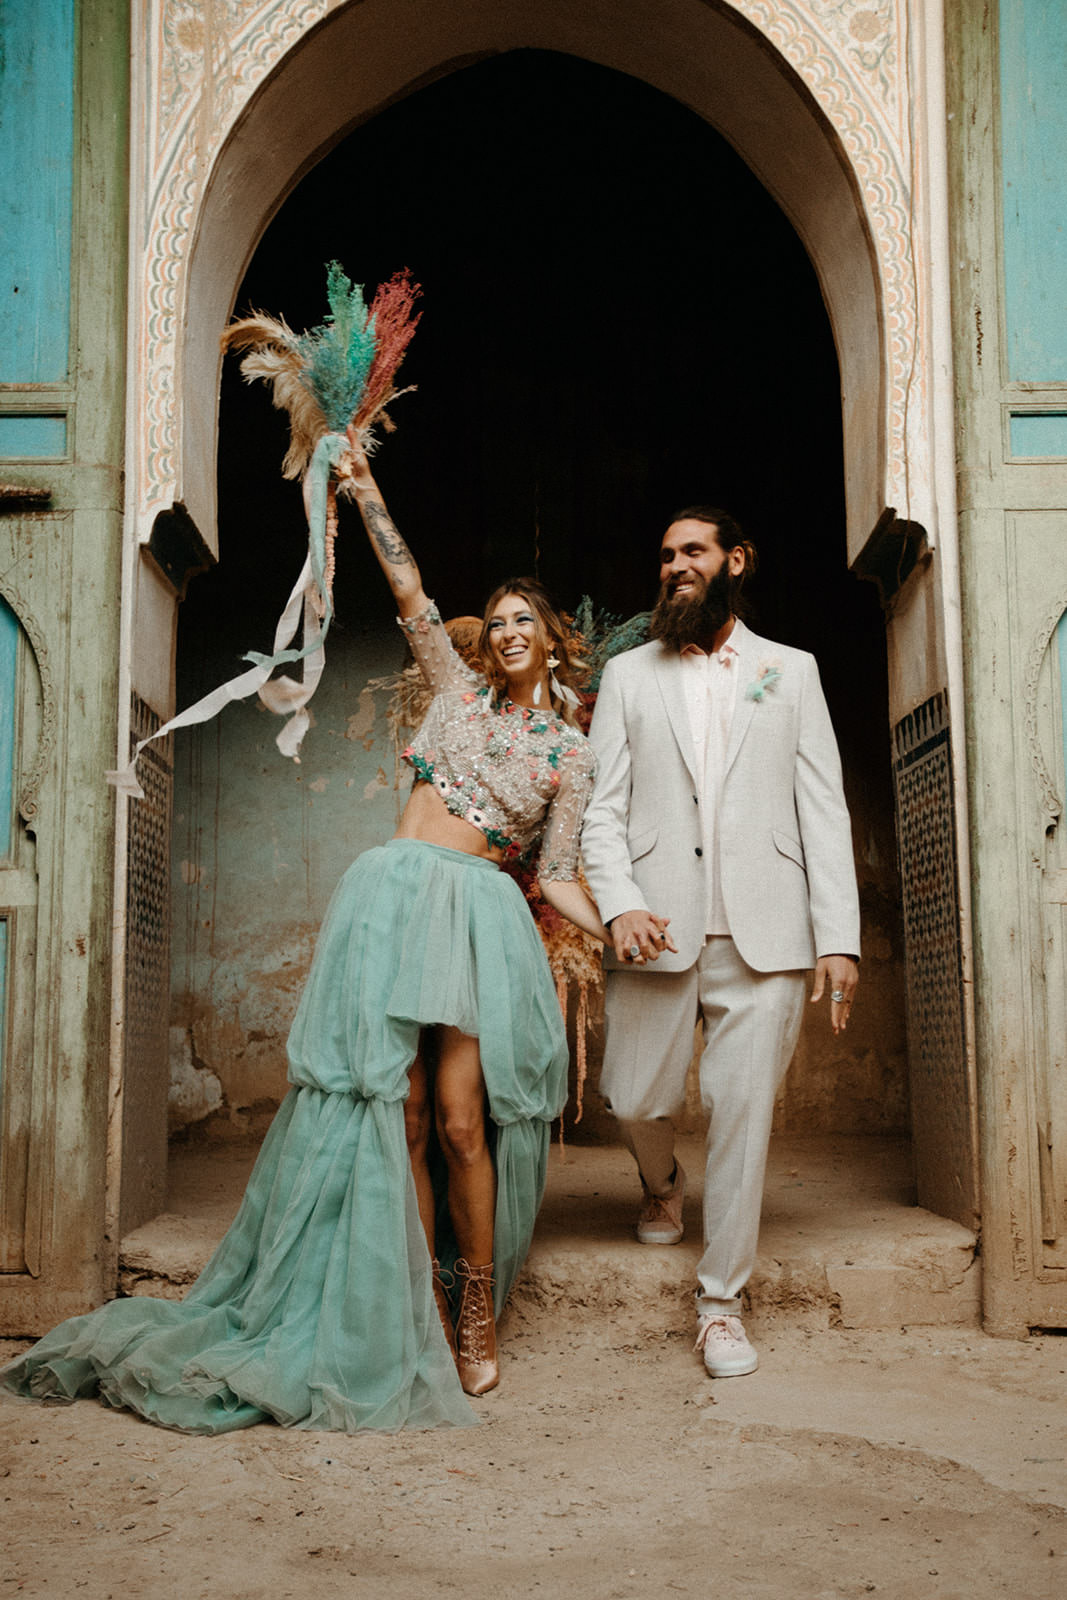 Elopment in an abandoned palace in Morocco